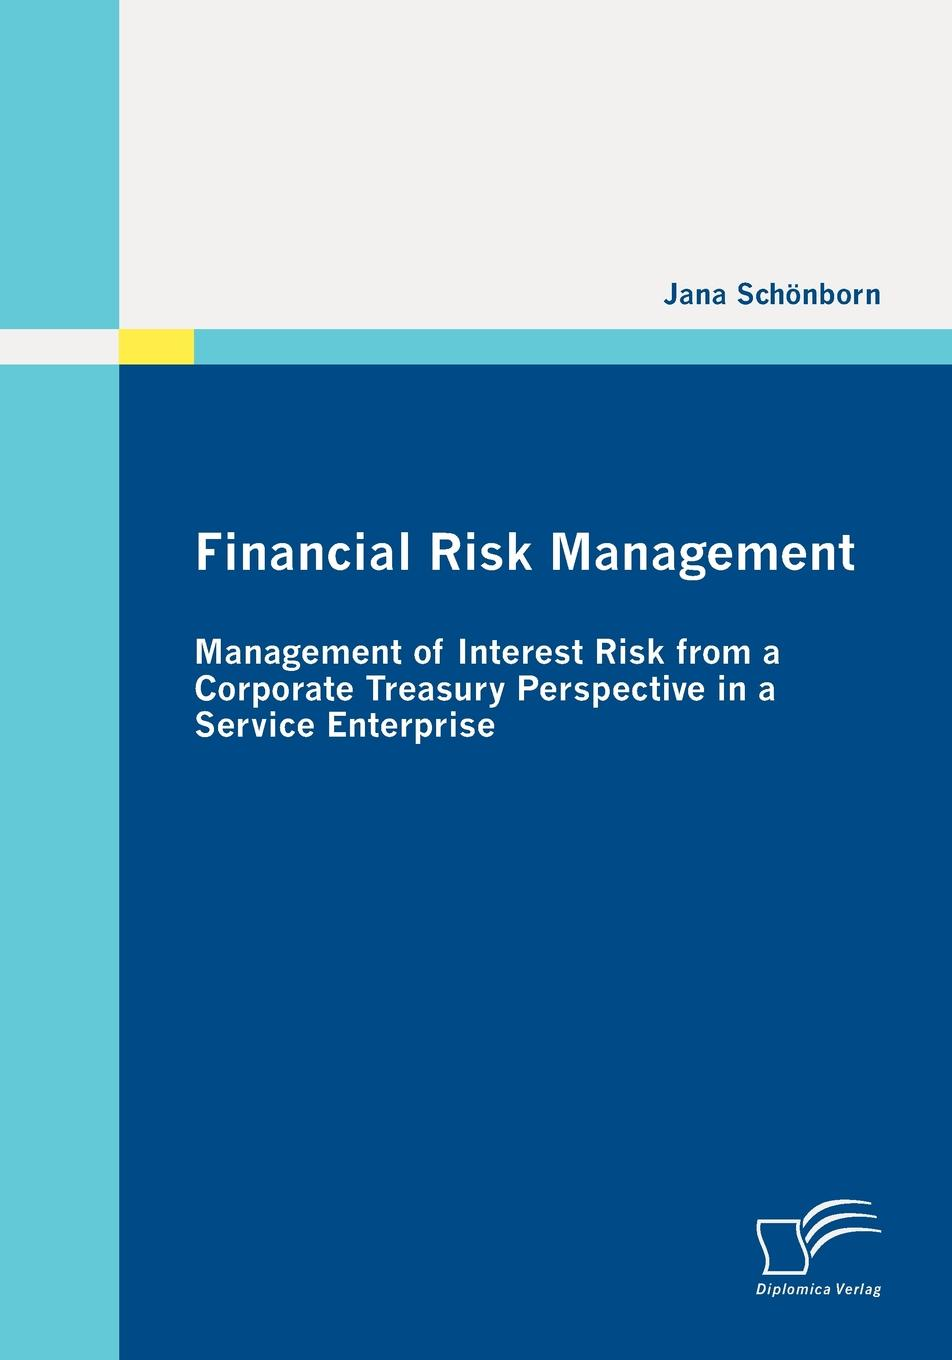 Jana Schönborn Financial Risk Management. Management of Interest Risk from a Corporate Treasury Perspective in a Service Enterprise john shaw c corporate governance and risk a systems approach